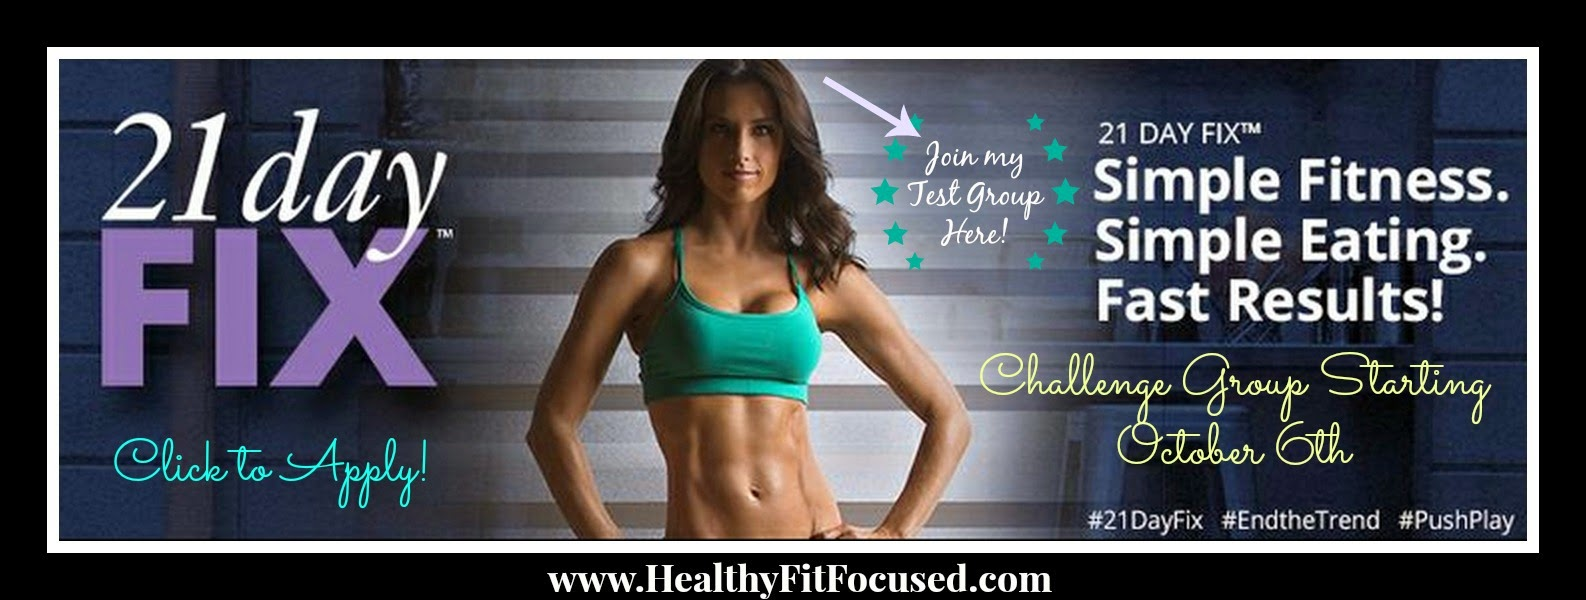 21 Day Fix accountability group, 21 Day Fix Cheat Sheet,